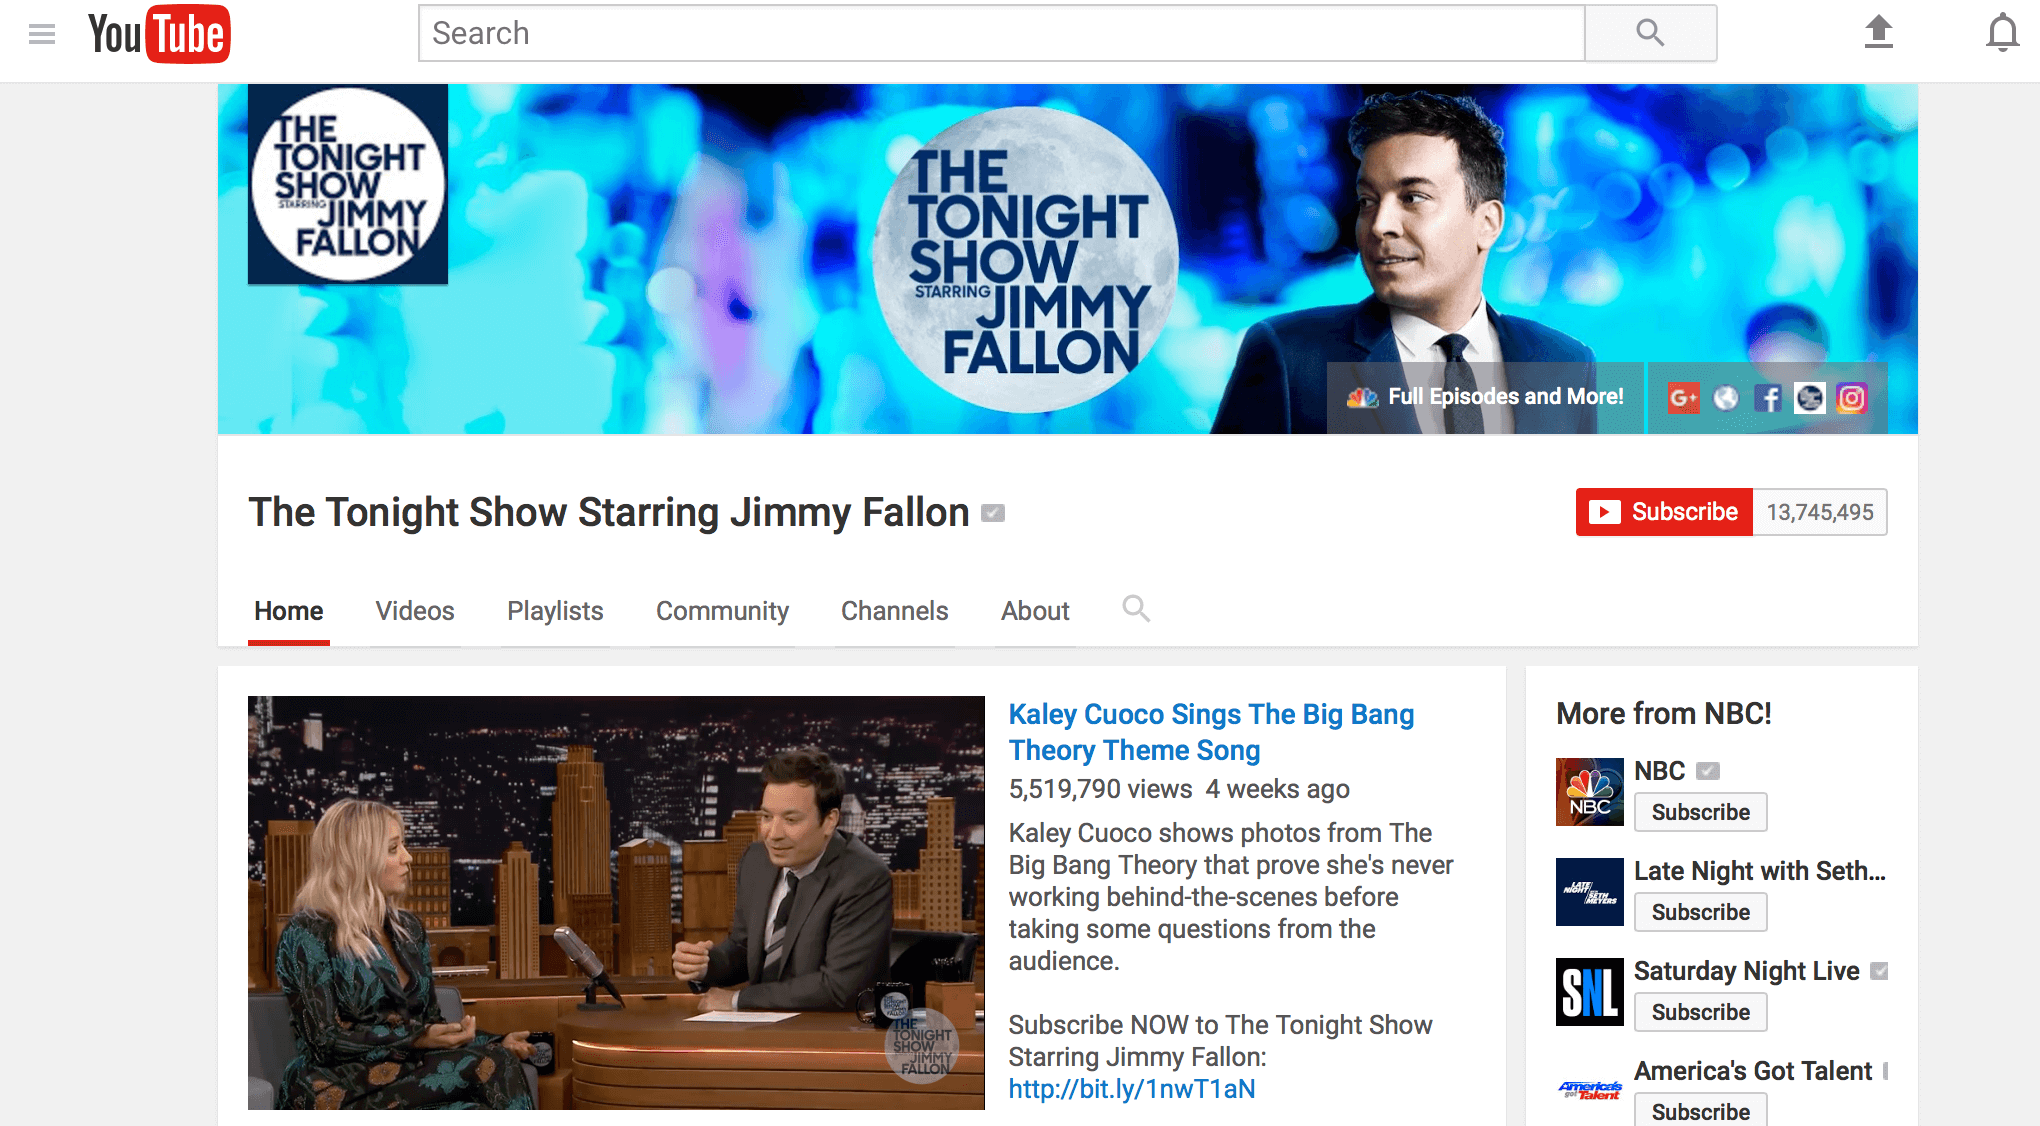 Tonight Show YouTube Channel Art